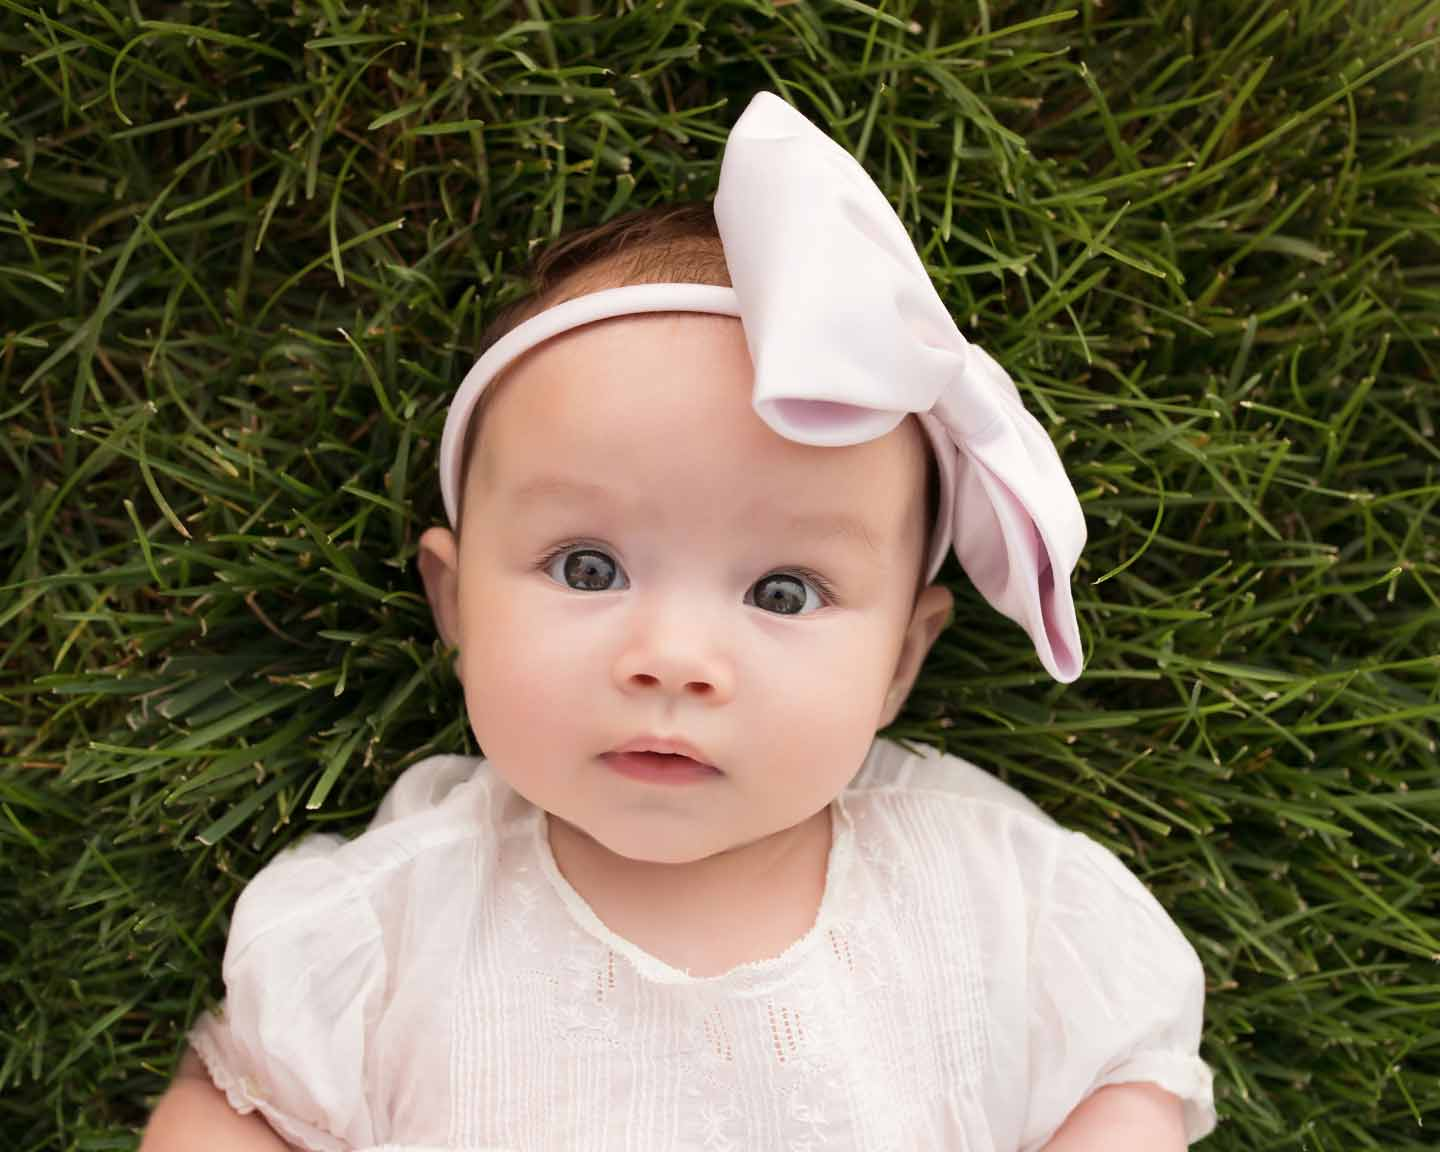 Baby girl with headband laying in grass